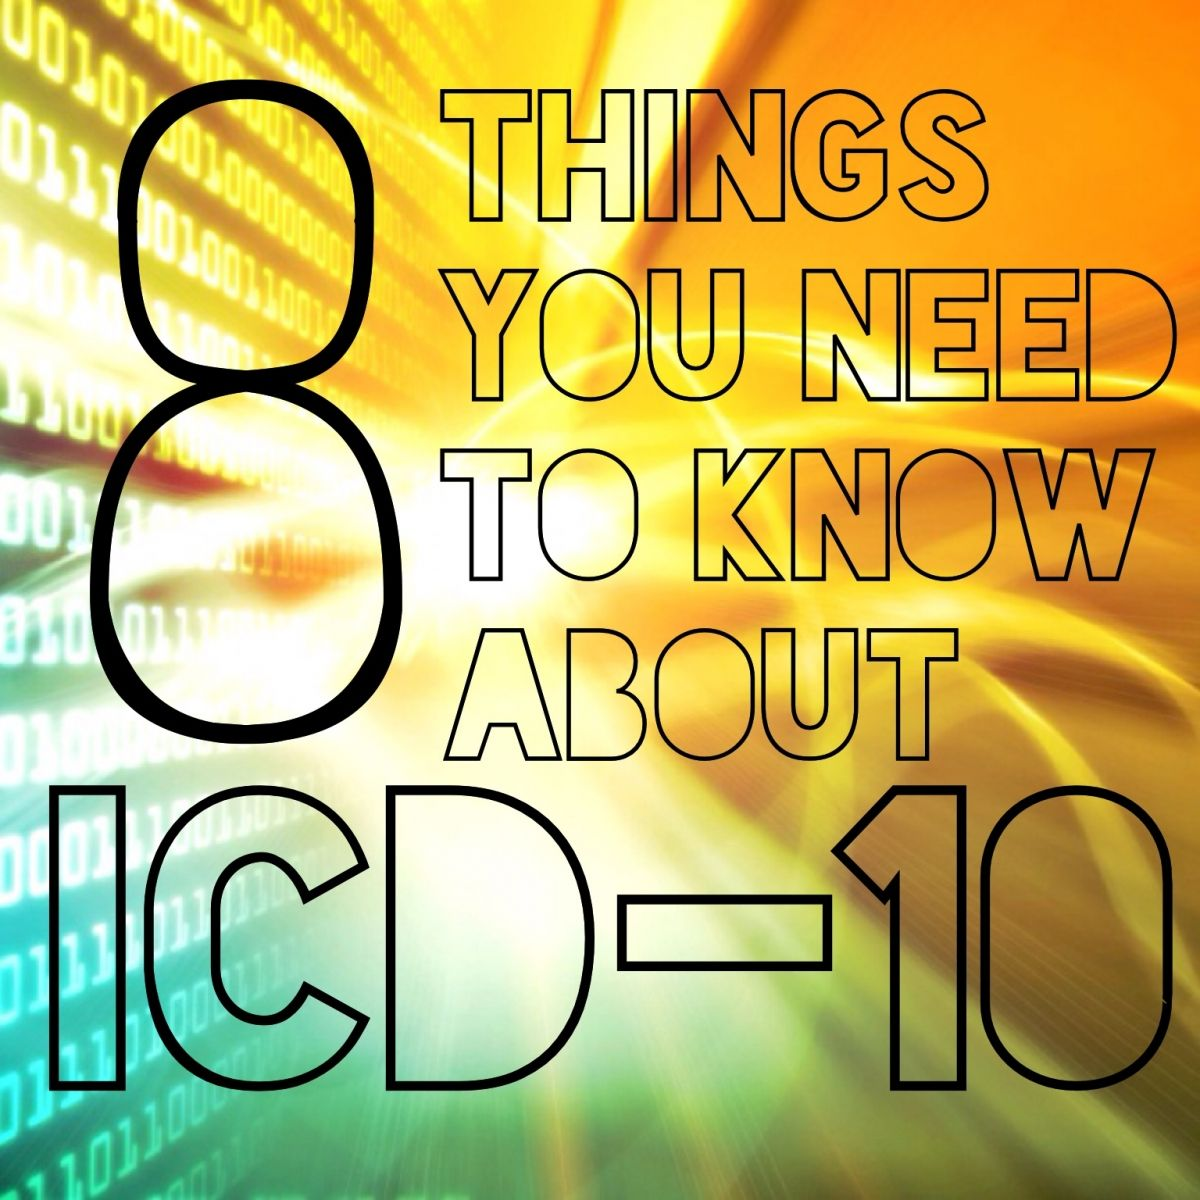 8 things you need to know now about icd 10 webpt icd10 8 things you need to know now about icd 10 webpt icd10 xflitez Choice Image